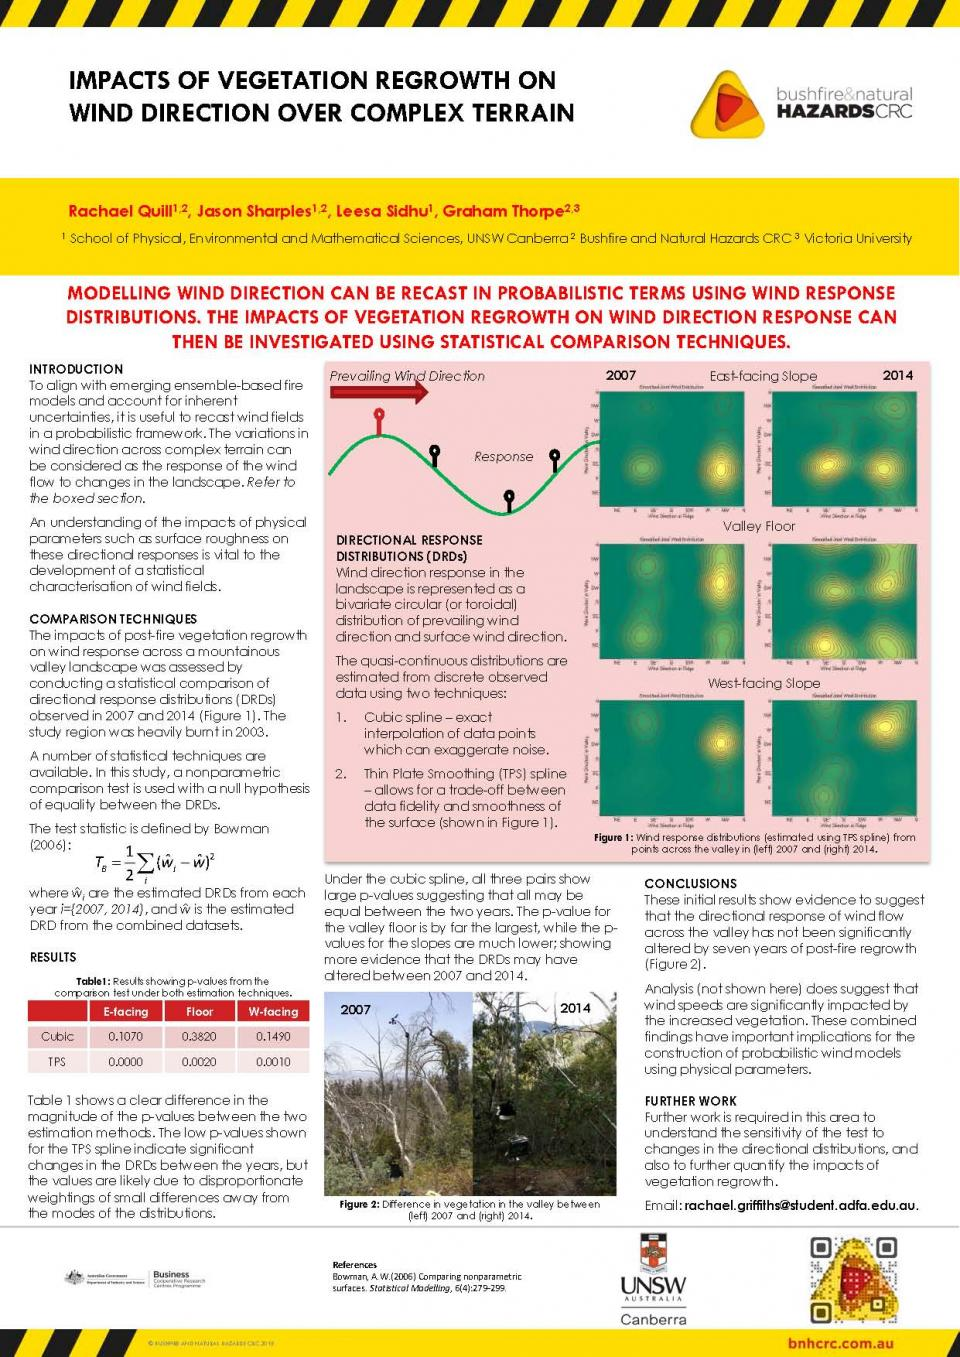 Impact of Vegetation Regrowth on Wind Direction Over Complex Terrain